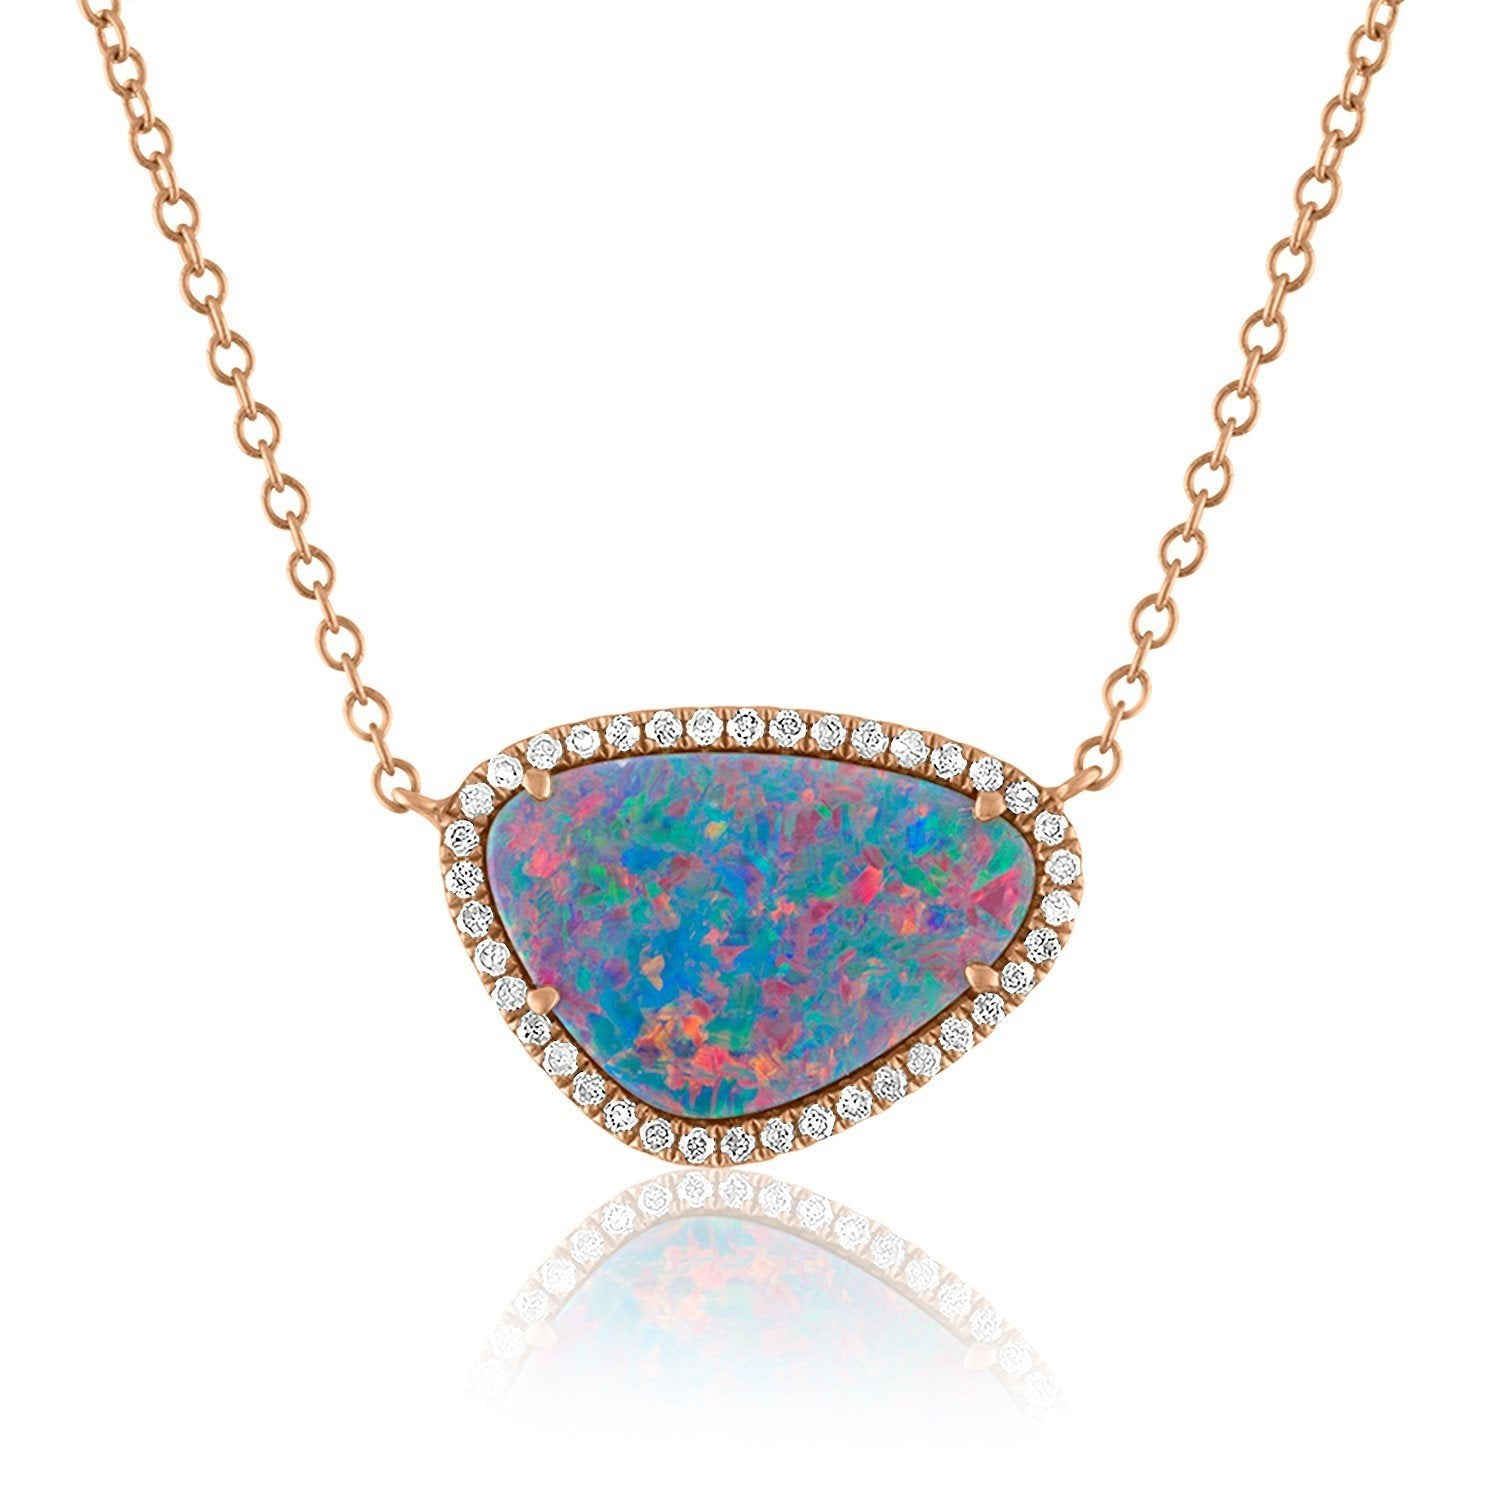 Jane Kaye | Organic Opal Necklace